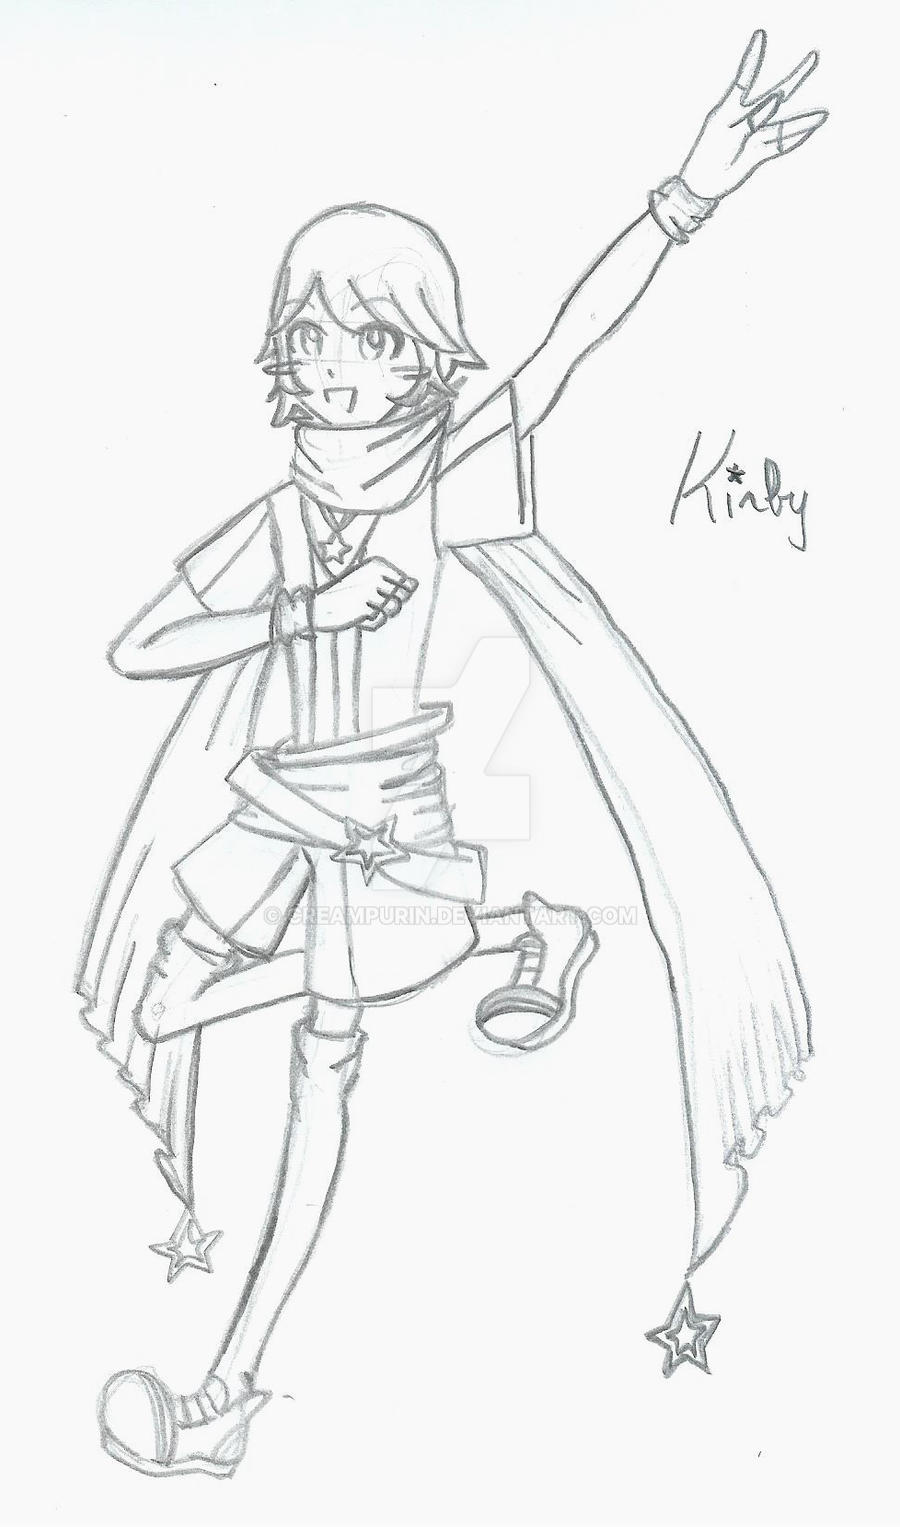 Kirby Gijinka Sketch by CreamPurin